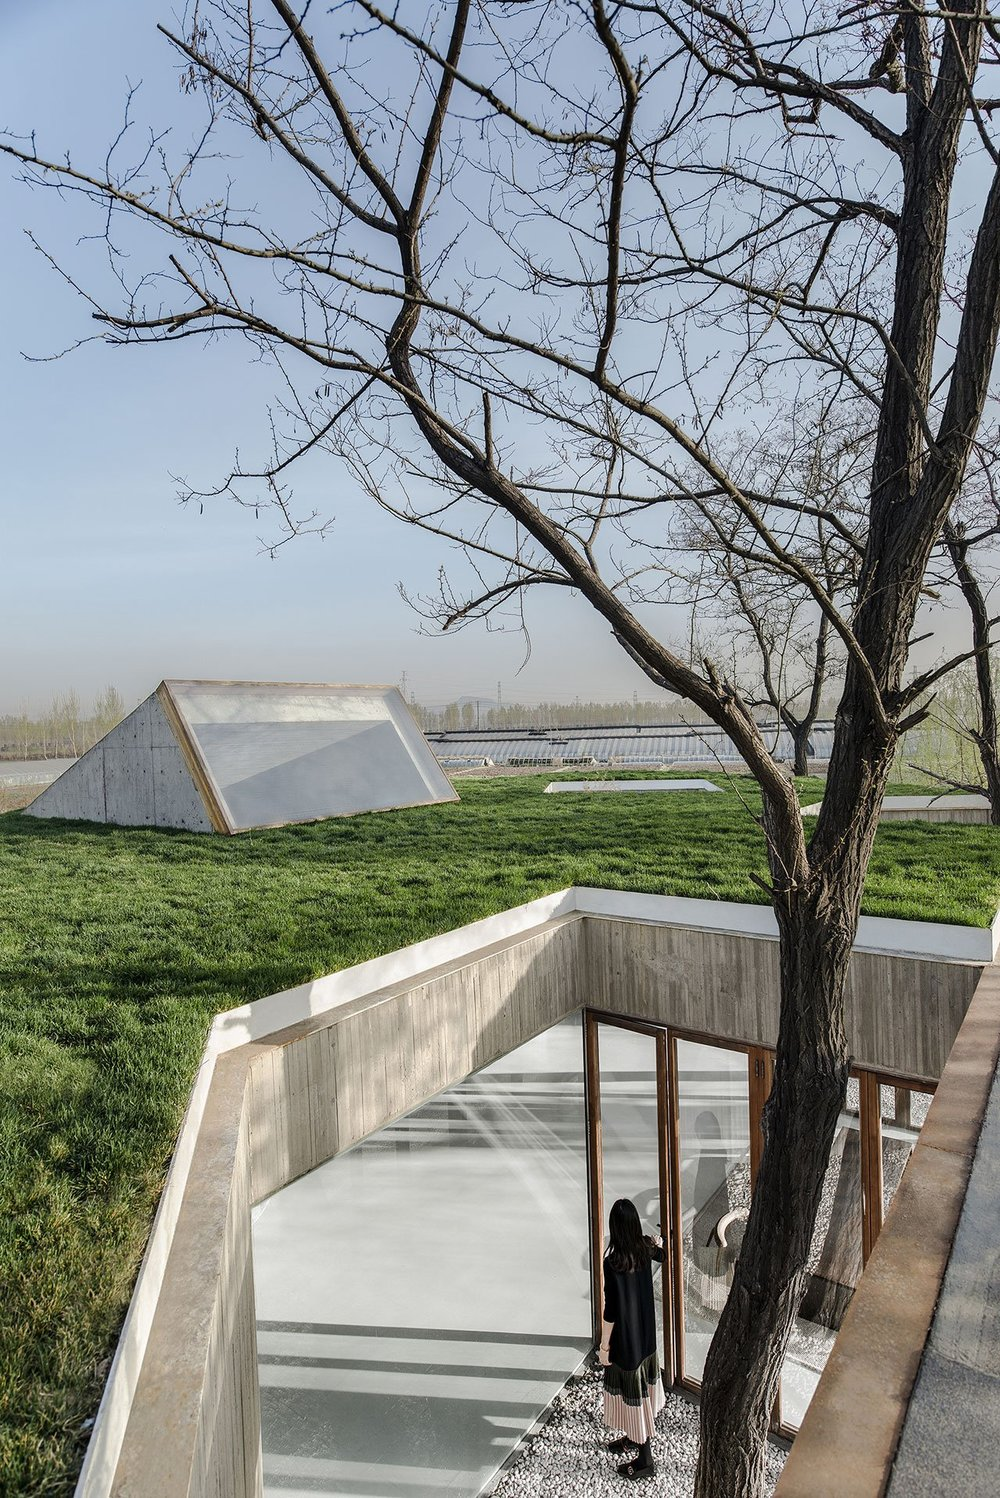 f11_waterside_buddist_shrine_tangshan_hebei_china_archstudio_yatzer.jpg